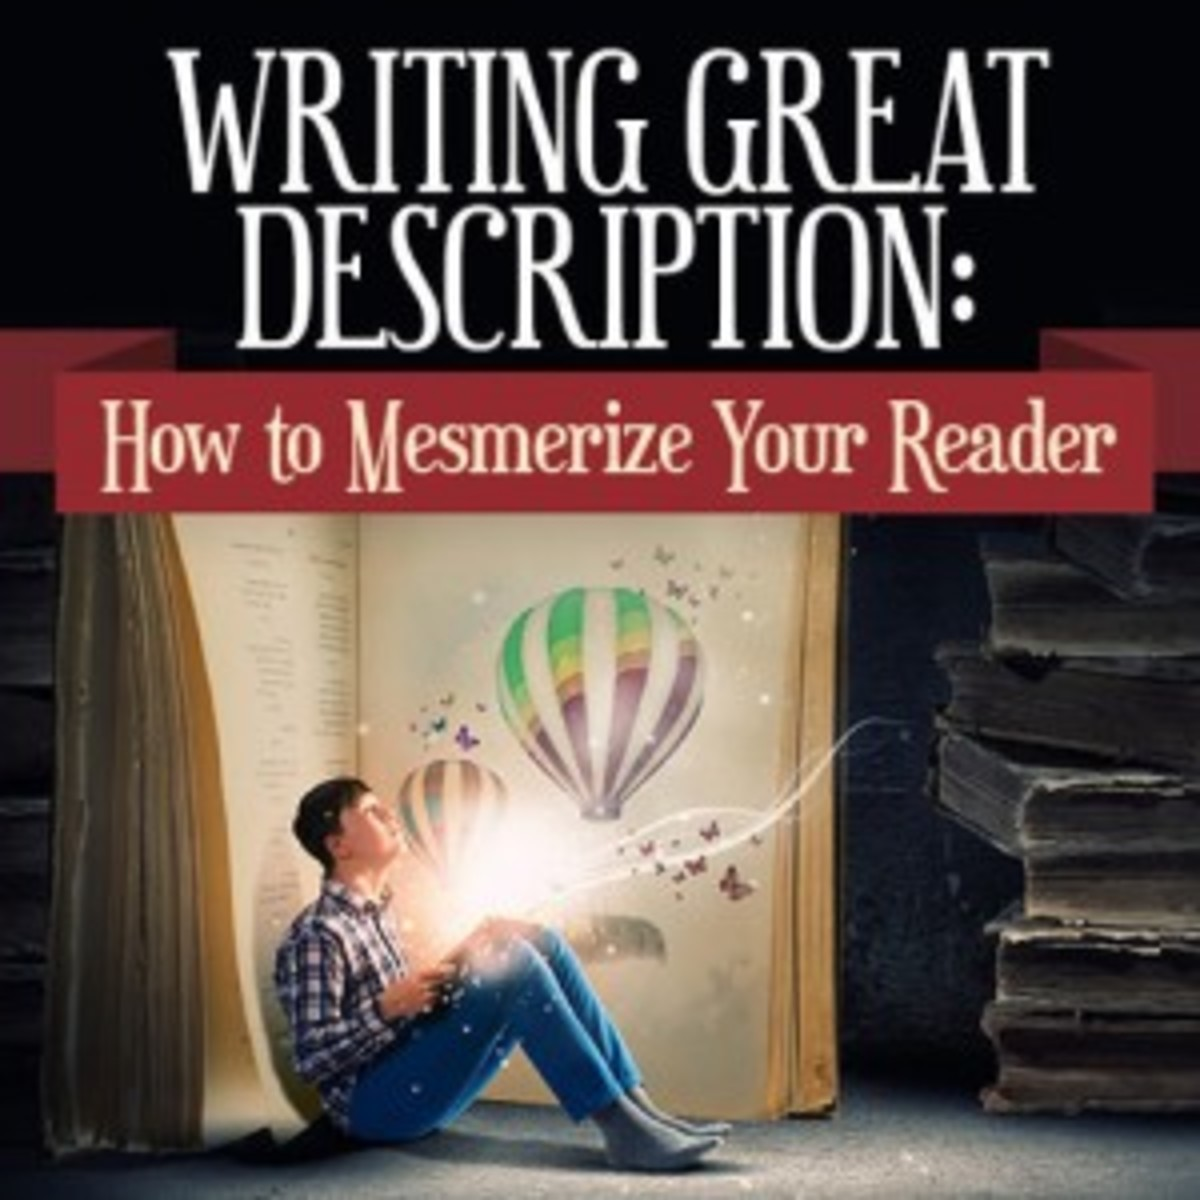 ws_writinggreatdescription-500.jpg_medium